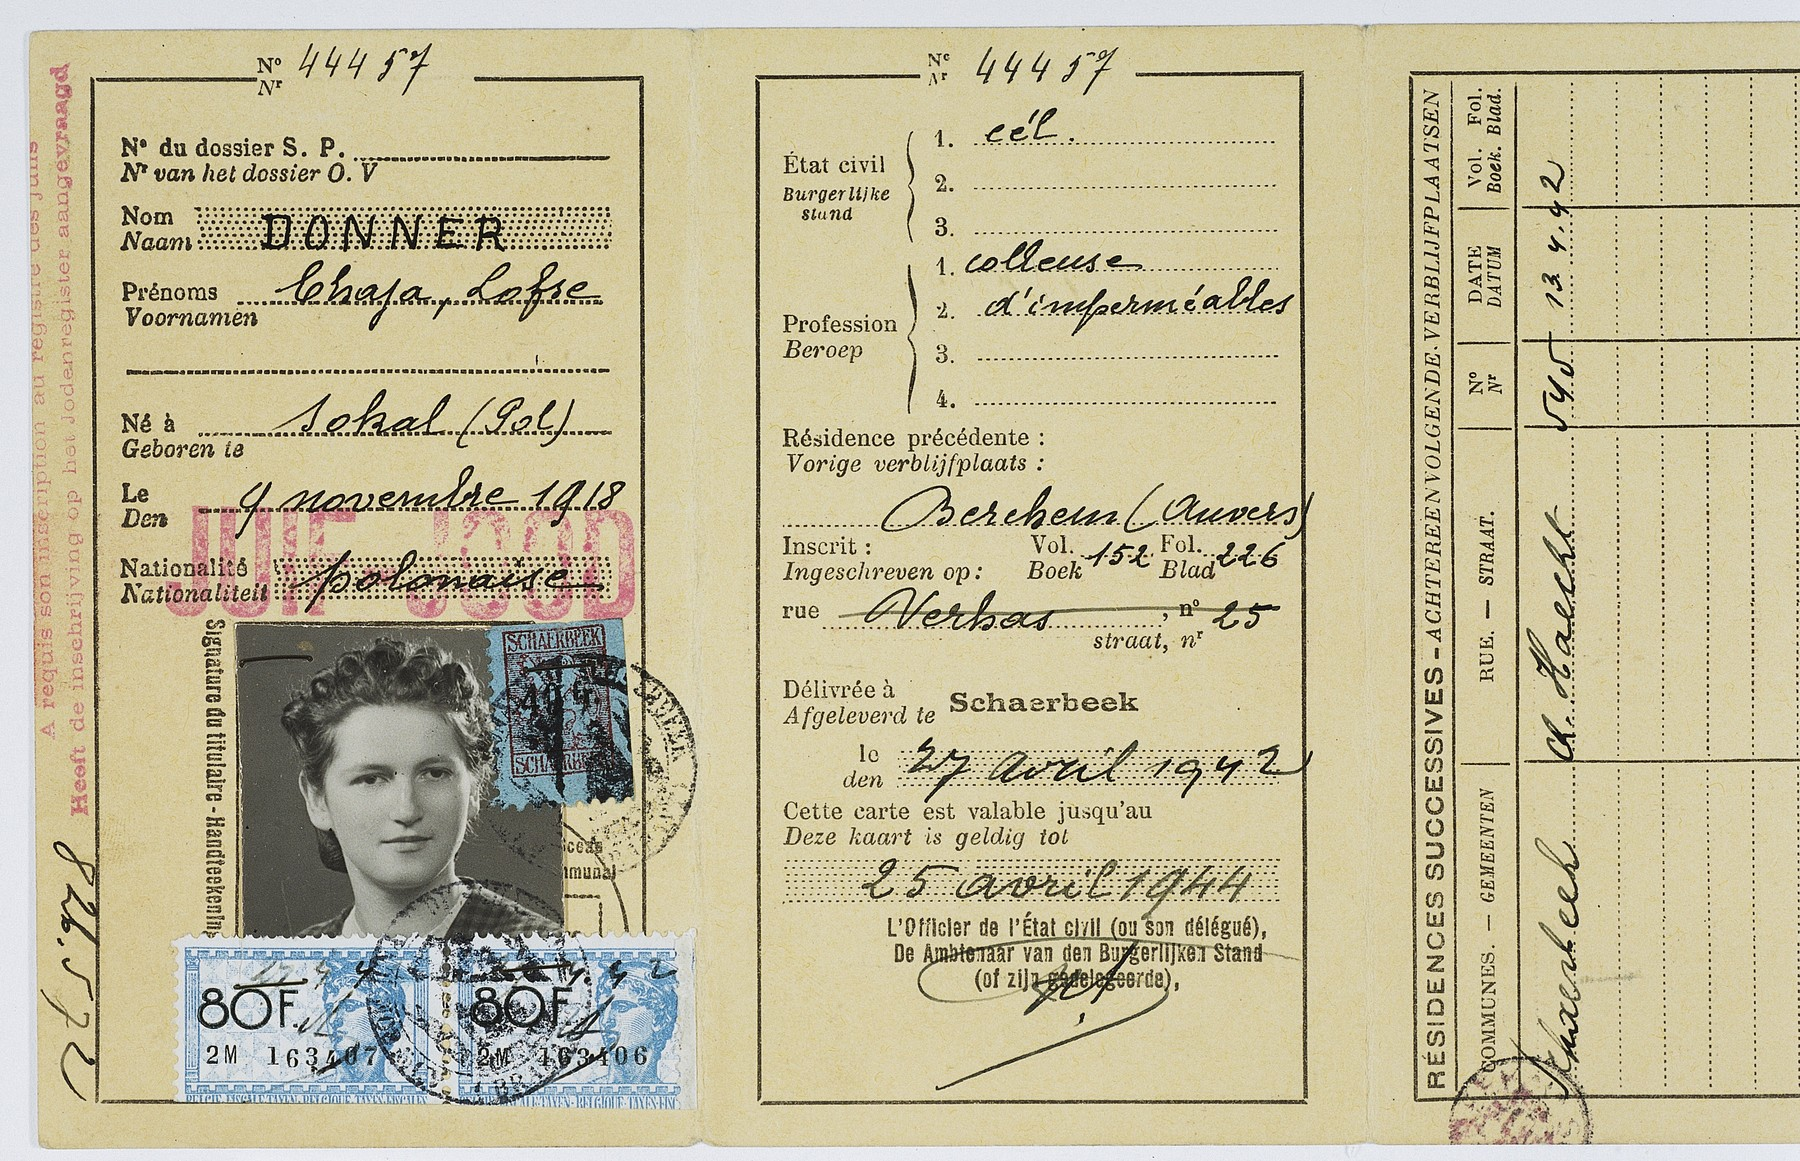 Belgian identity card issued to Clara (Chaja) Donner on April 27, 1942 in Brussels-Schaerbeek identifying her nationality as Polish.